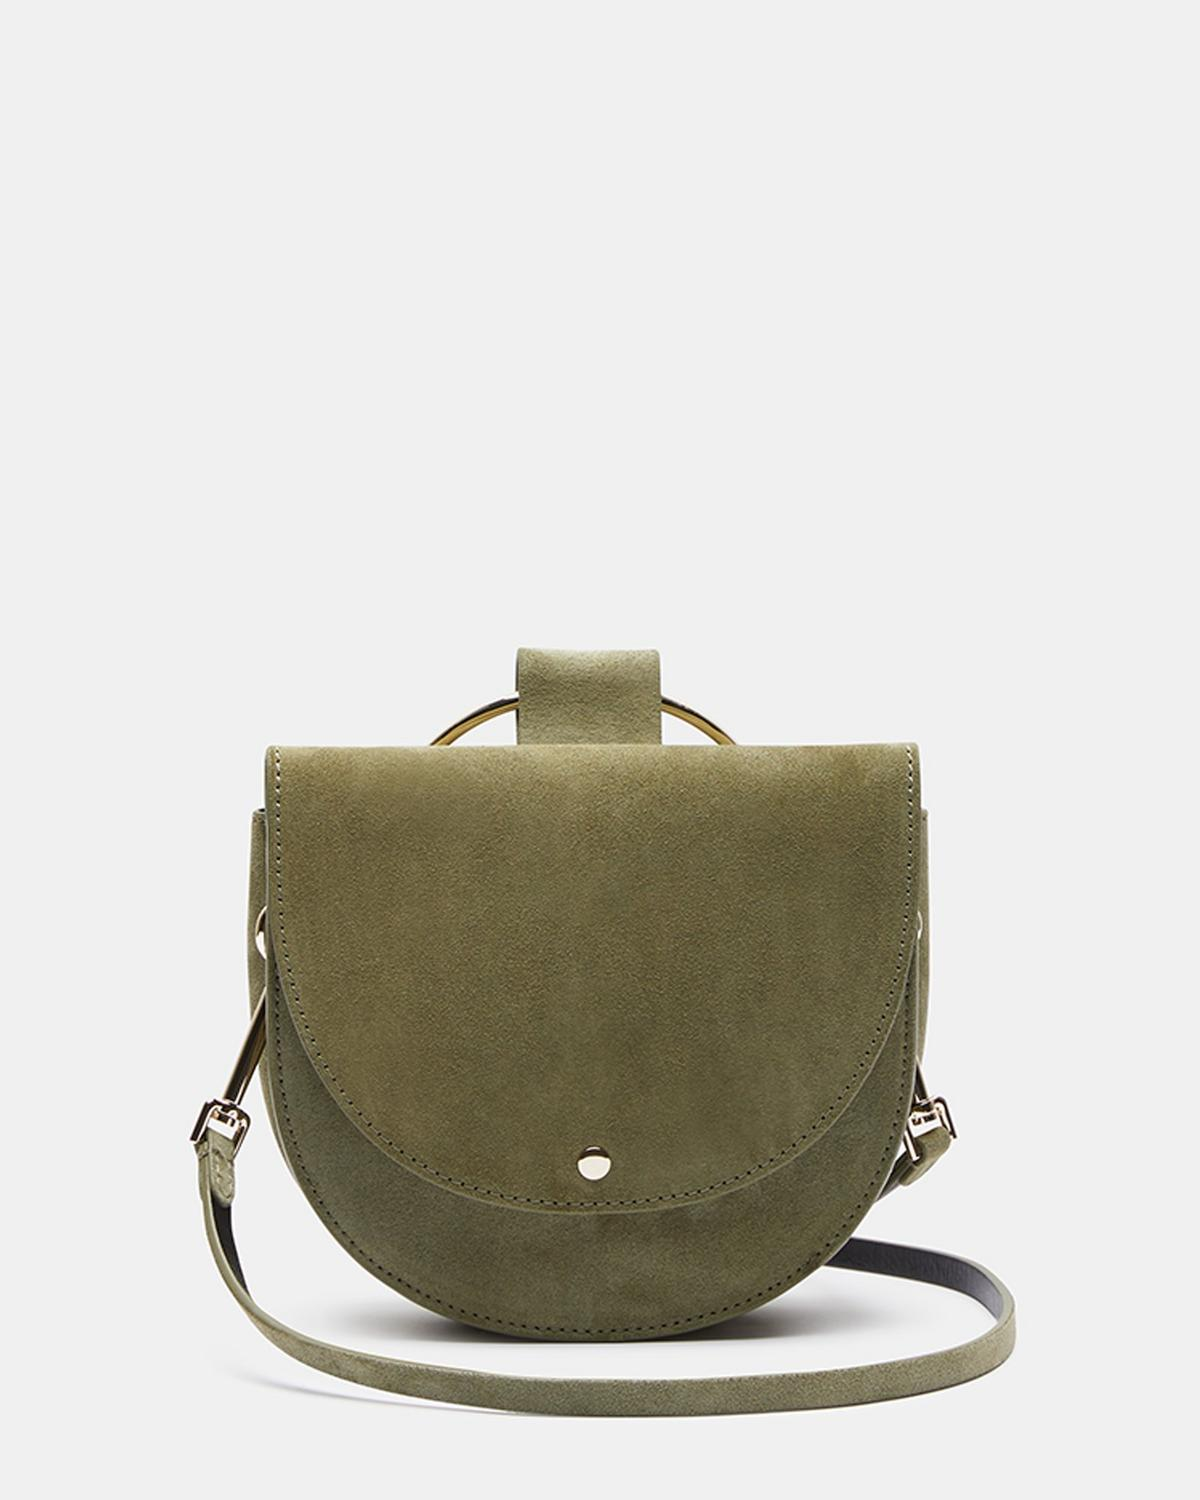 Whitney Bag in Suede